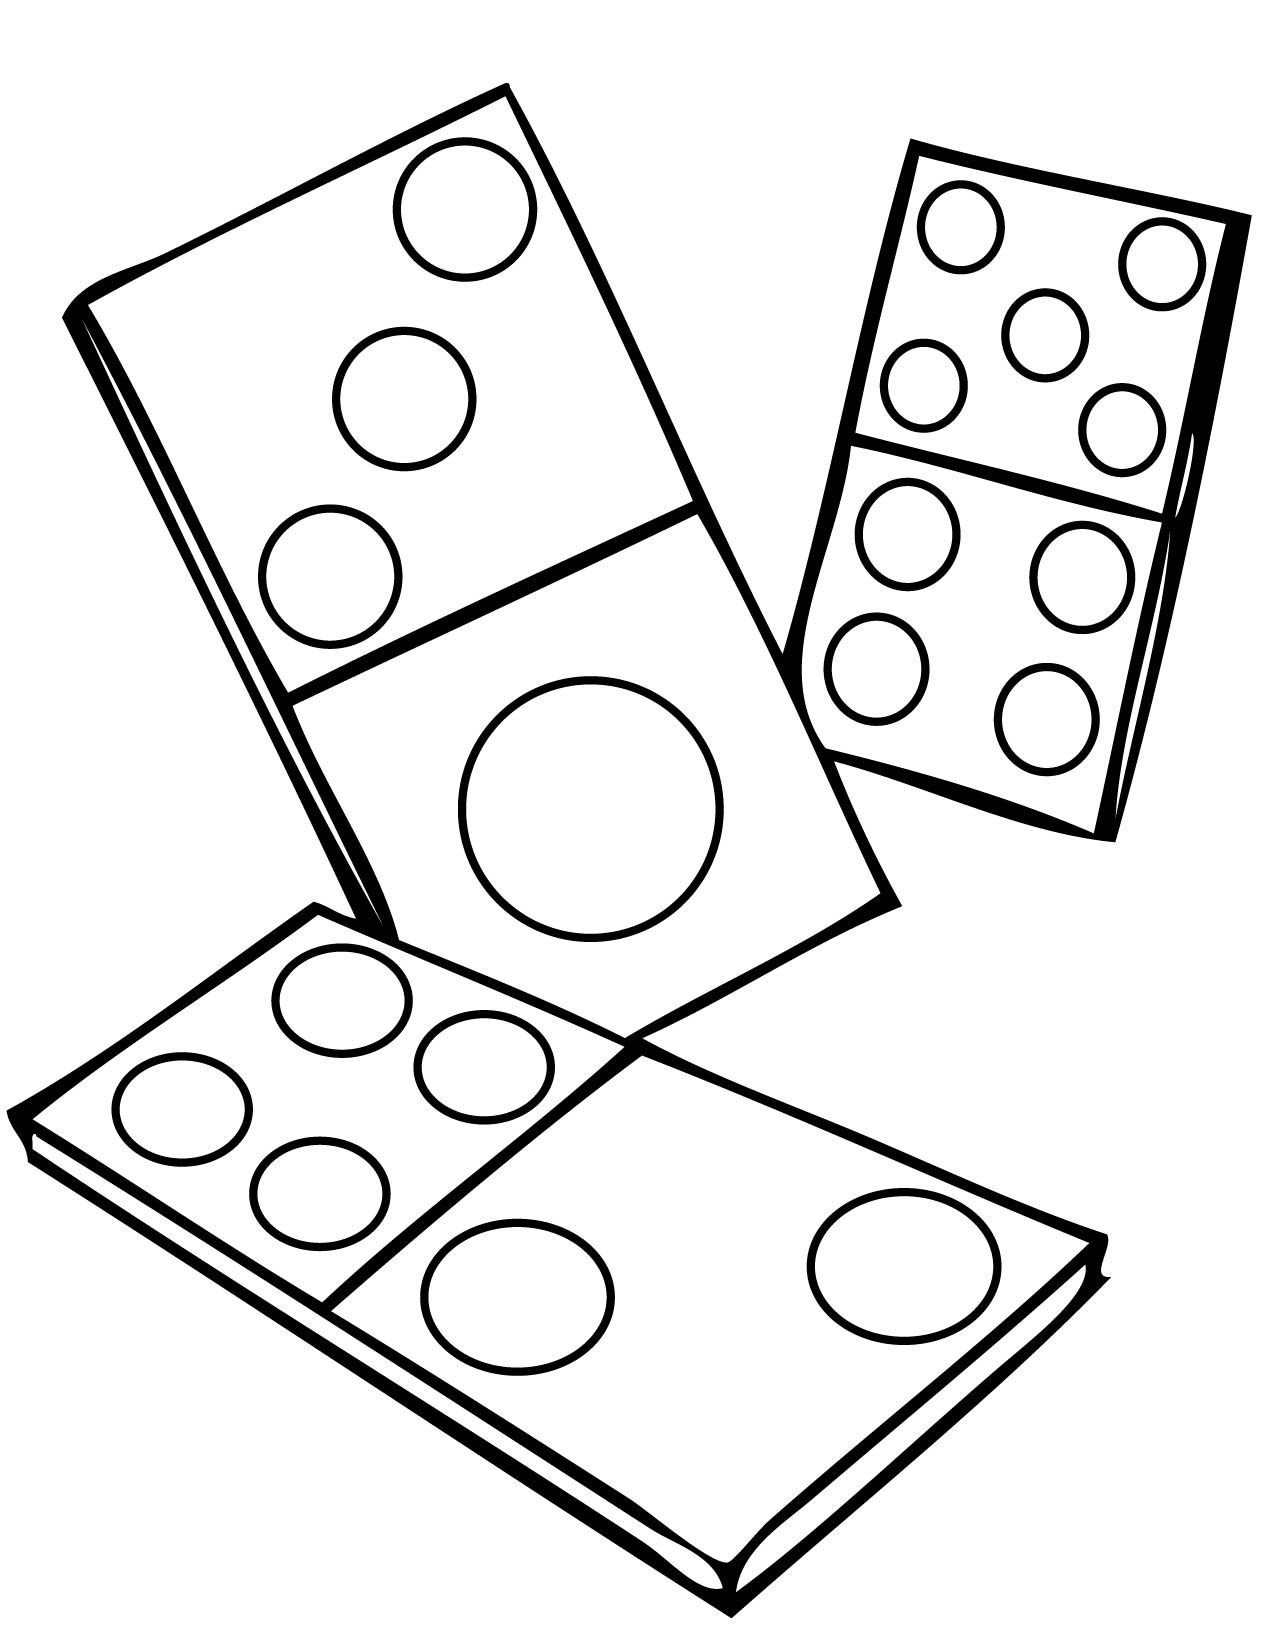 Coloring pages domino Coloring book games